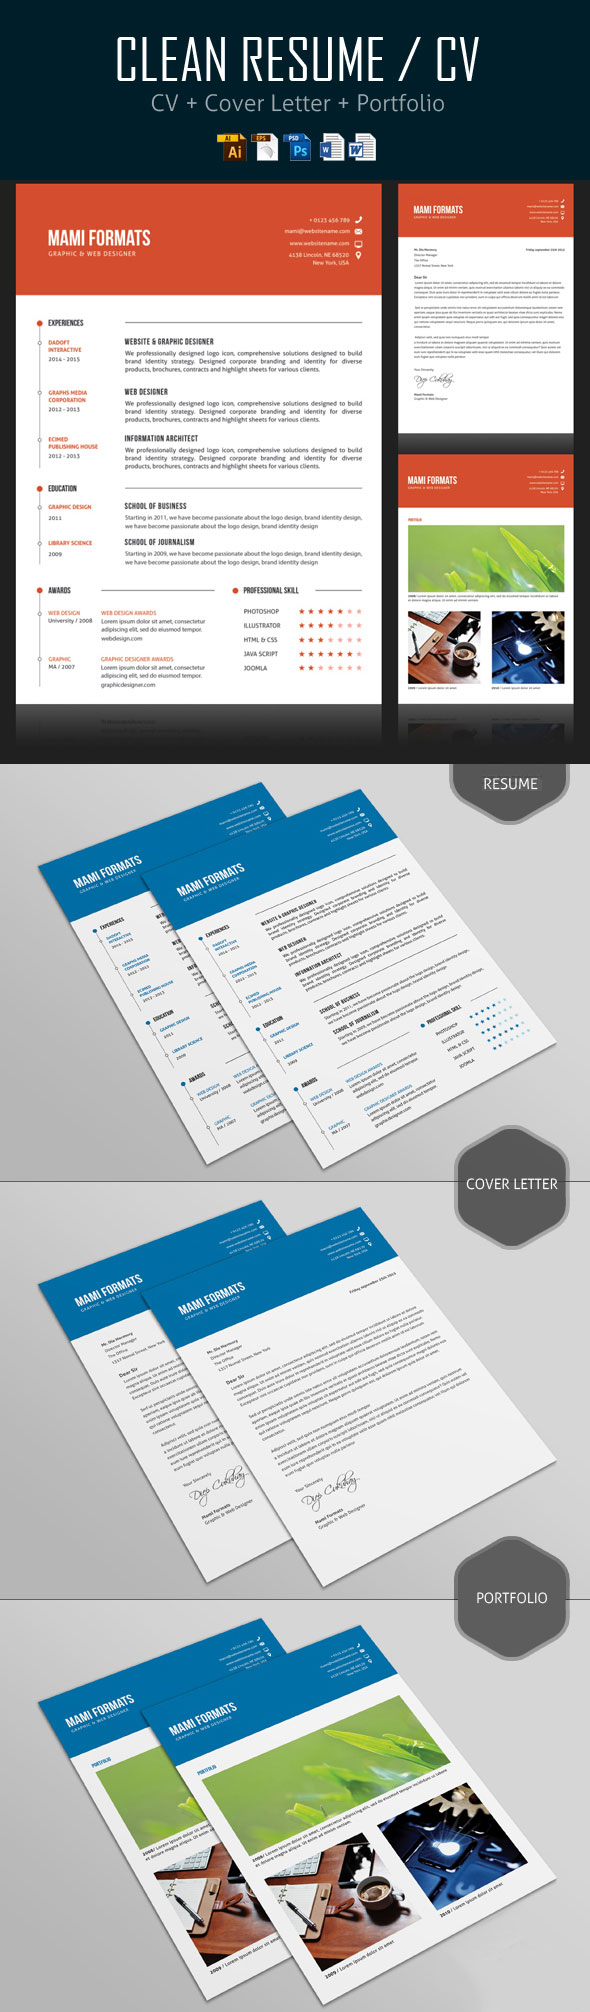 simple cvresume cover letter design - Creative Resume Design Templates